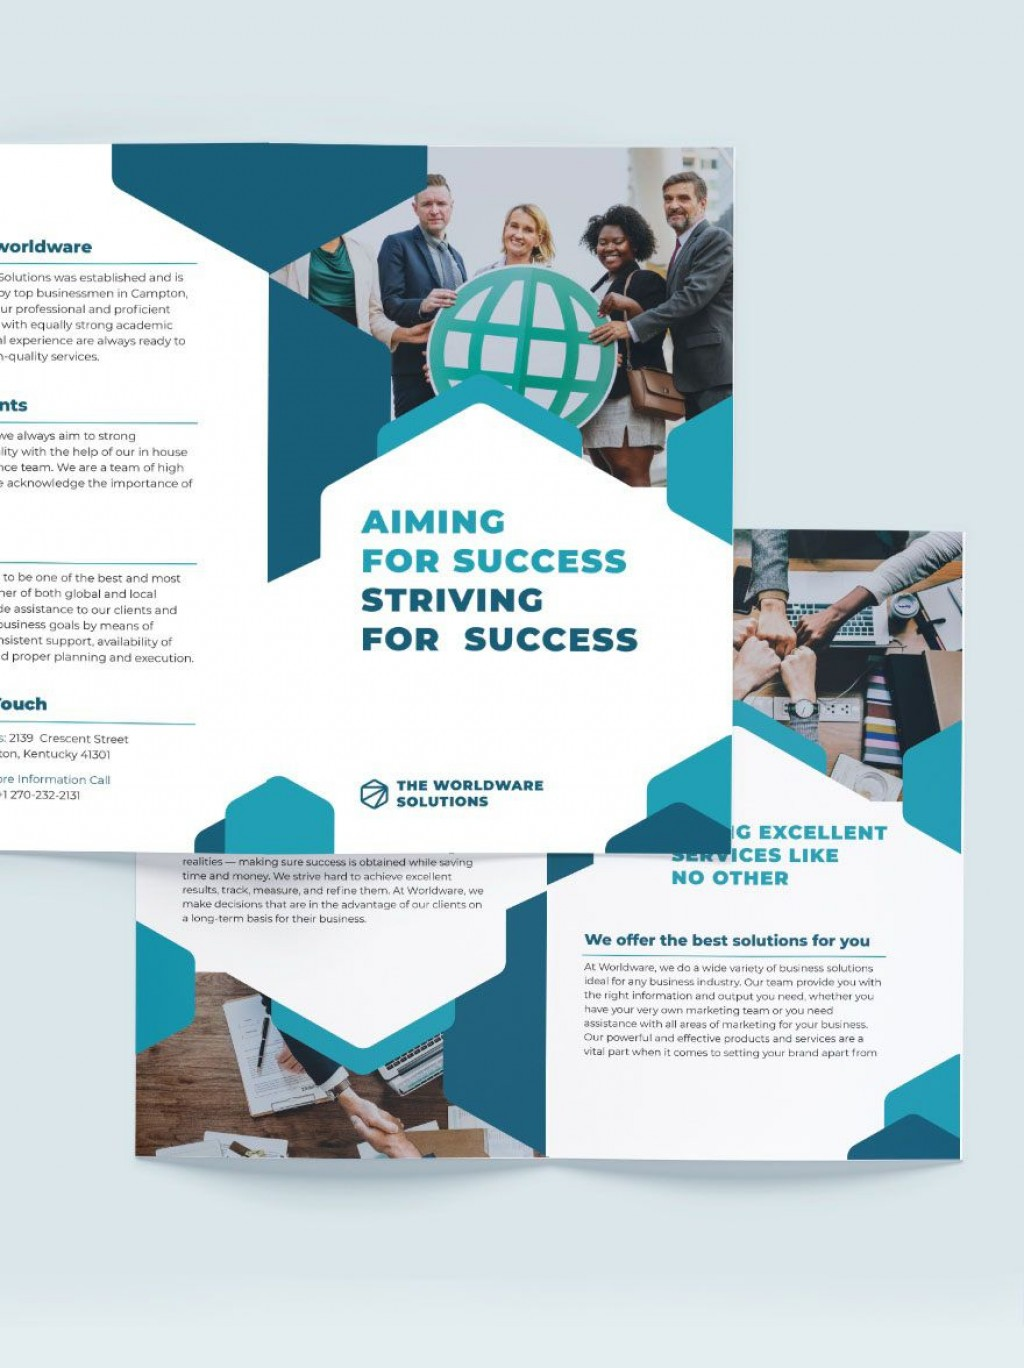 004 Outstanding Adobe Photoshop Brochure Template Free Download High Resolution Large